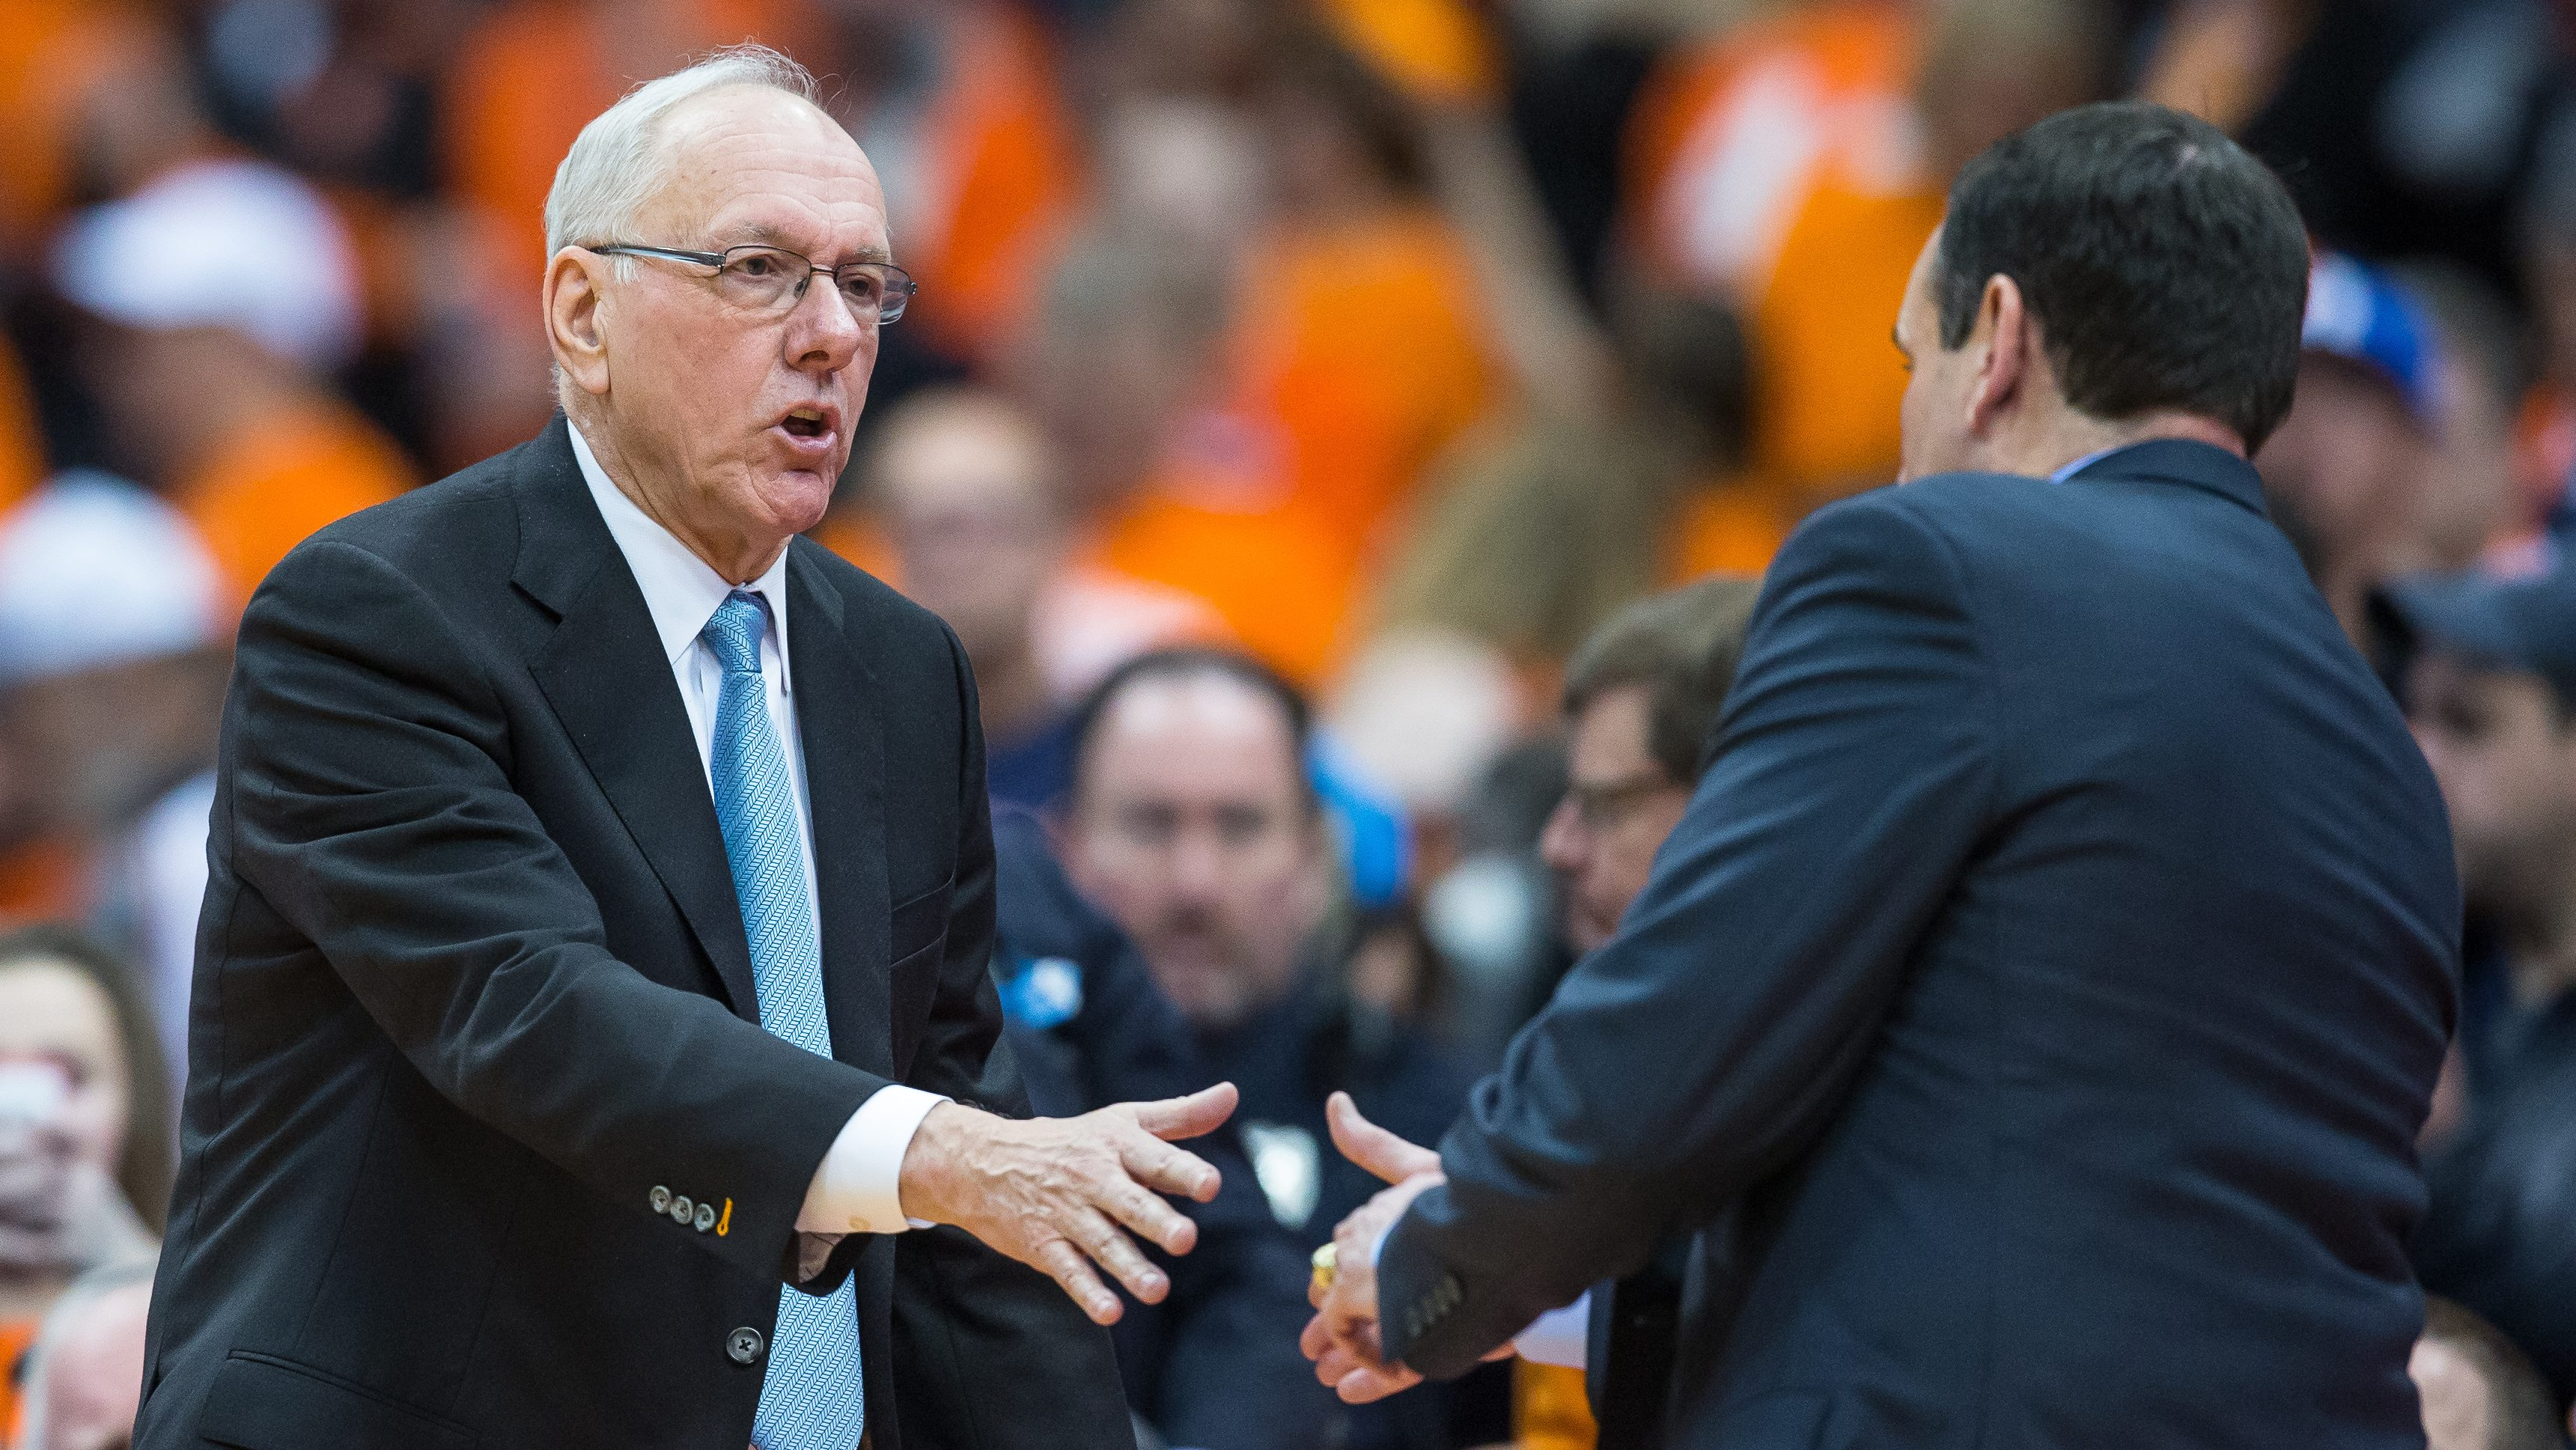 SYRACUSE, NY - FEBRUARY 14: Head coach Jim Boeheim of the Syracuse Orange shakes the hand of Head coach Mike Krzyzewski of the Duke Blue Devils after the game on February 14, 2015 at The Carrier Dome in Syracuse, New York. Duke defeats Syracuse 80-72. (Photo by Brett Carlsen/Getty Images)